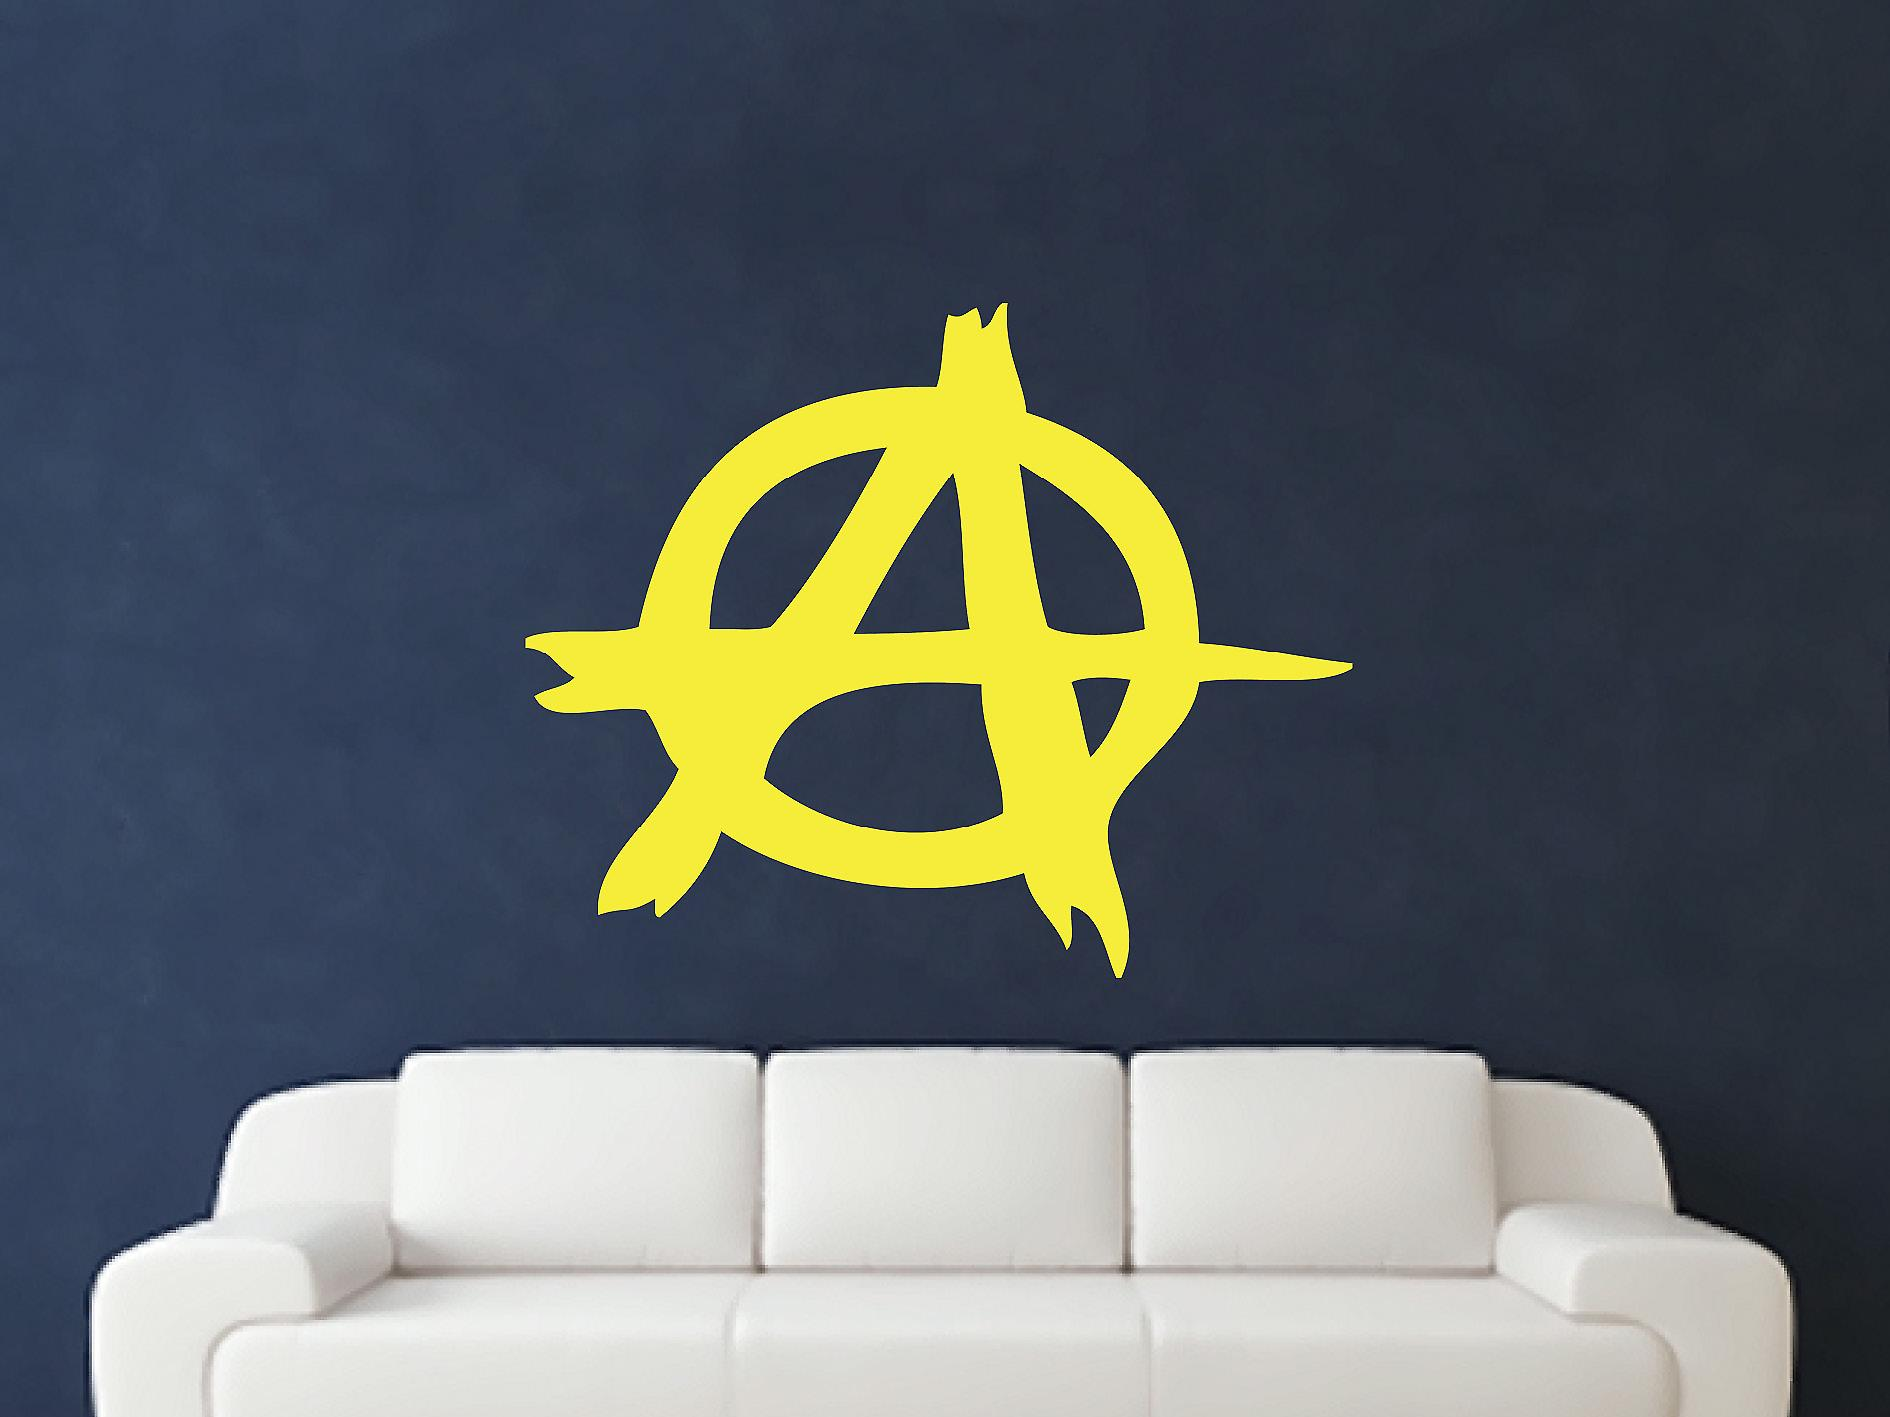 Anarchy symbool Wall Art Sticker - zwavel